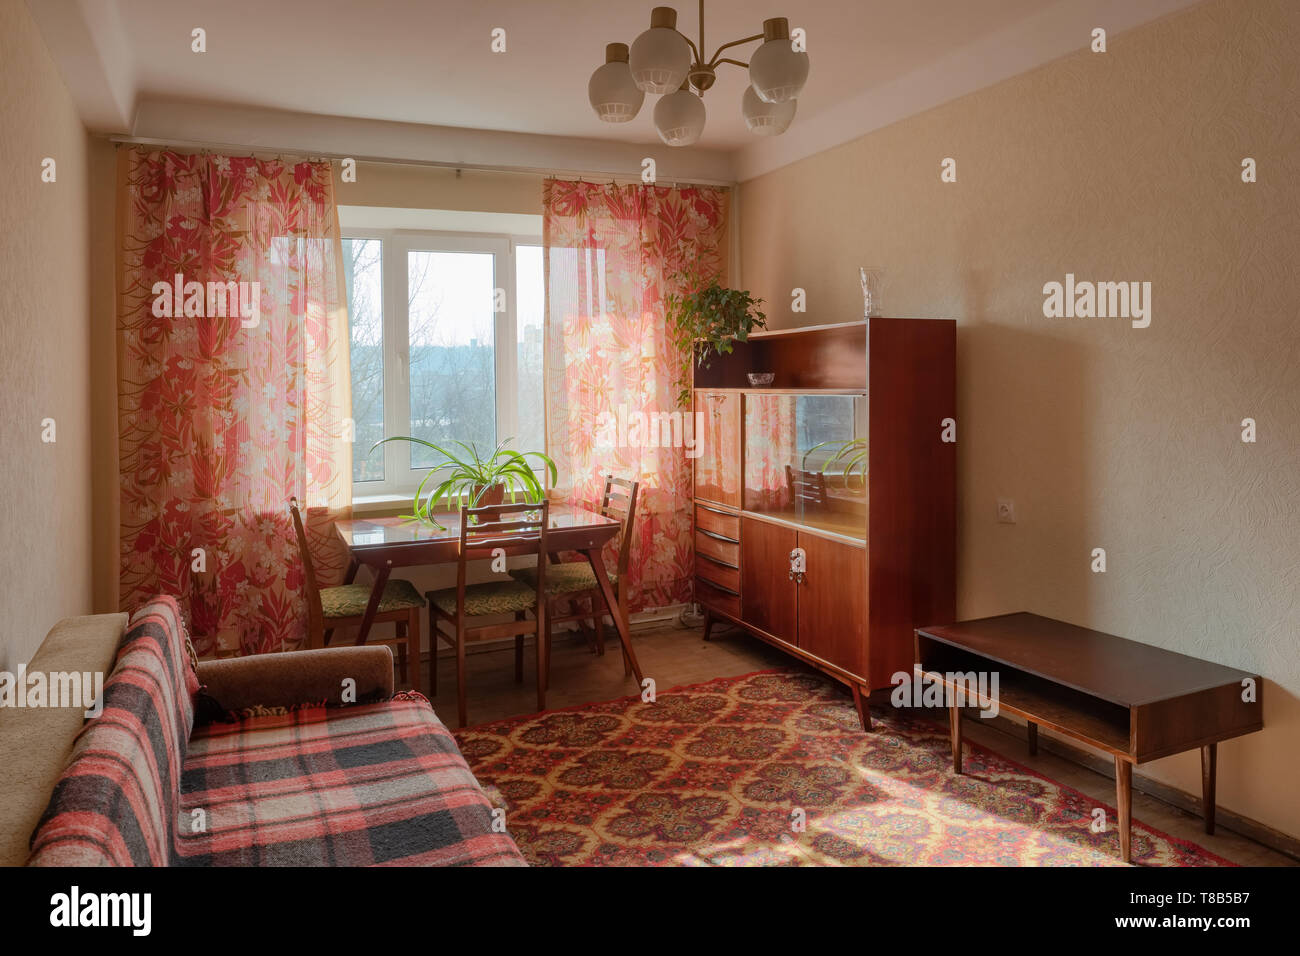 Interior of typical soviet style apartment.  Stock Photo